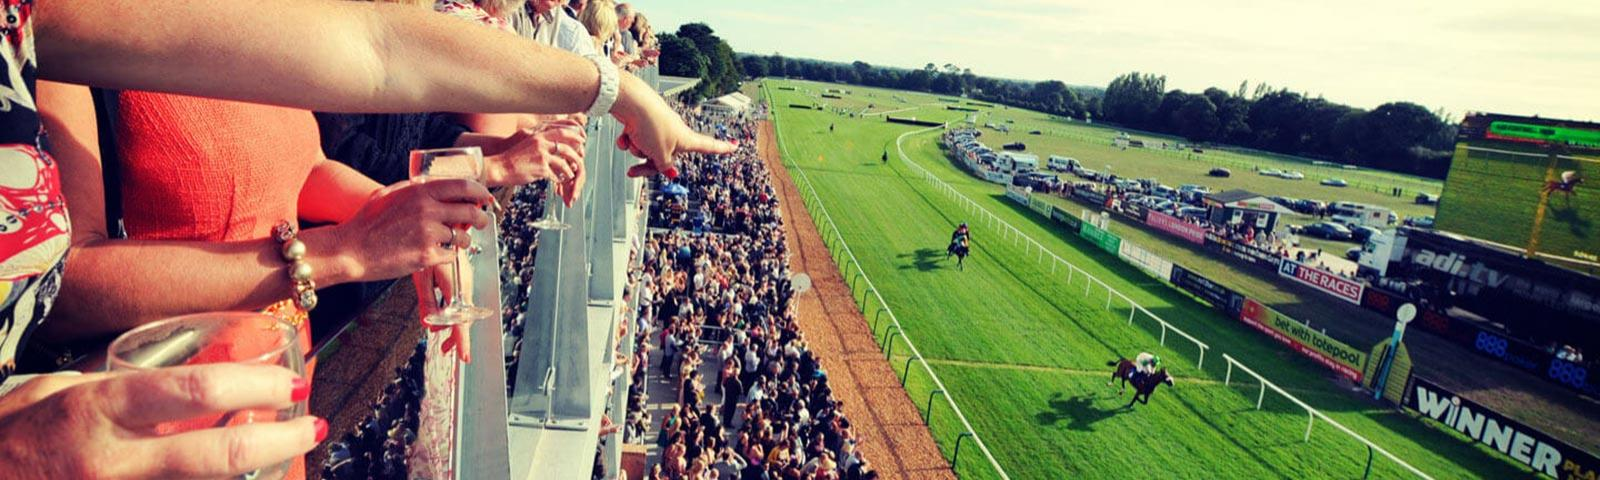 Crowds watching racing from the top floor of the main building at Fontwell Park Racecourse.